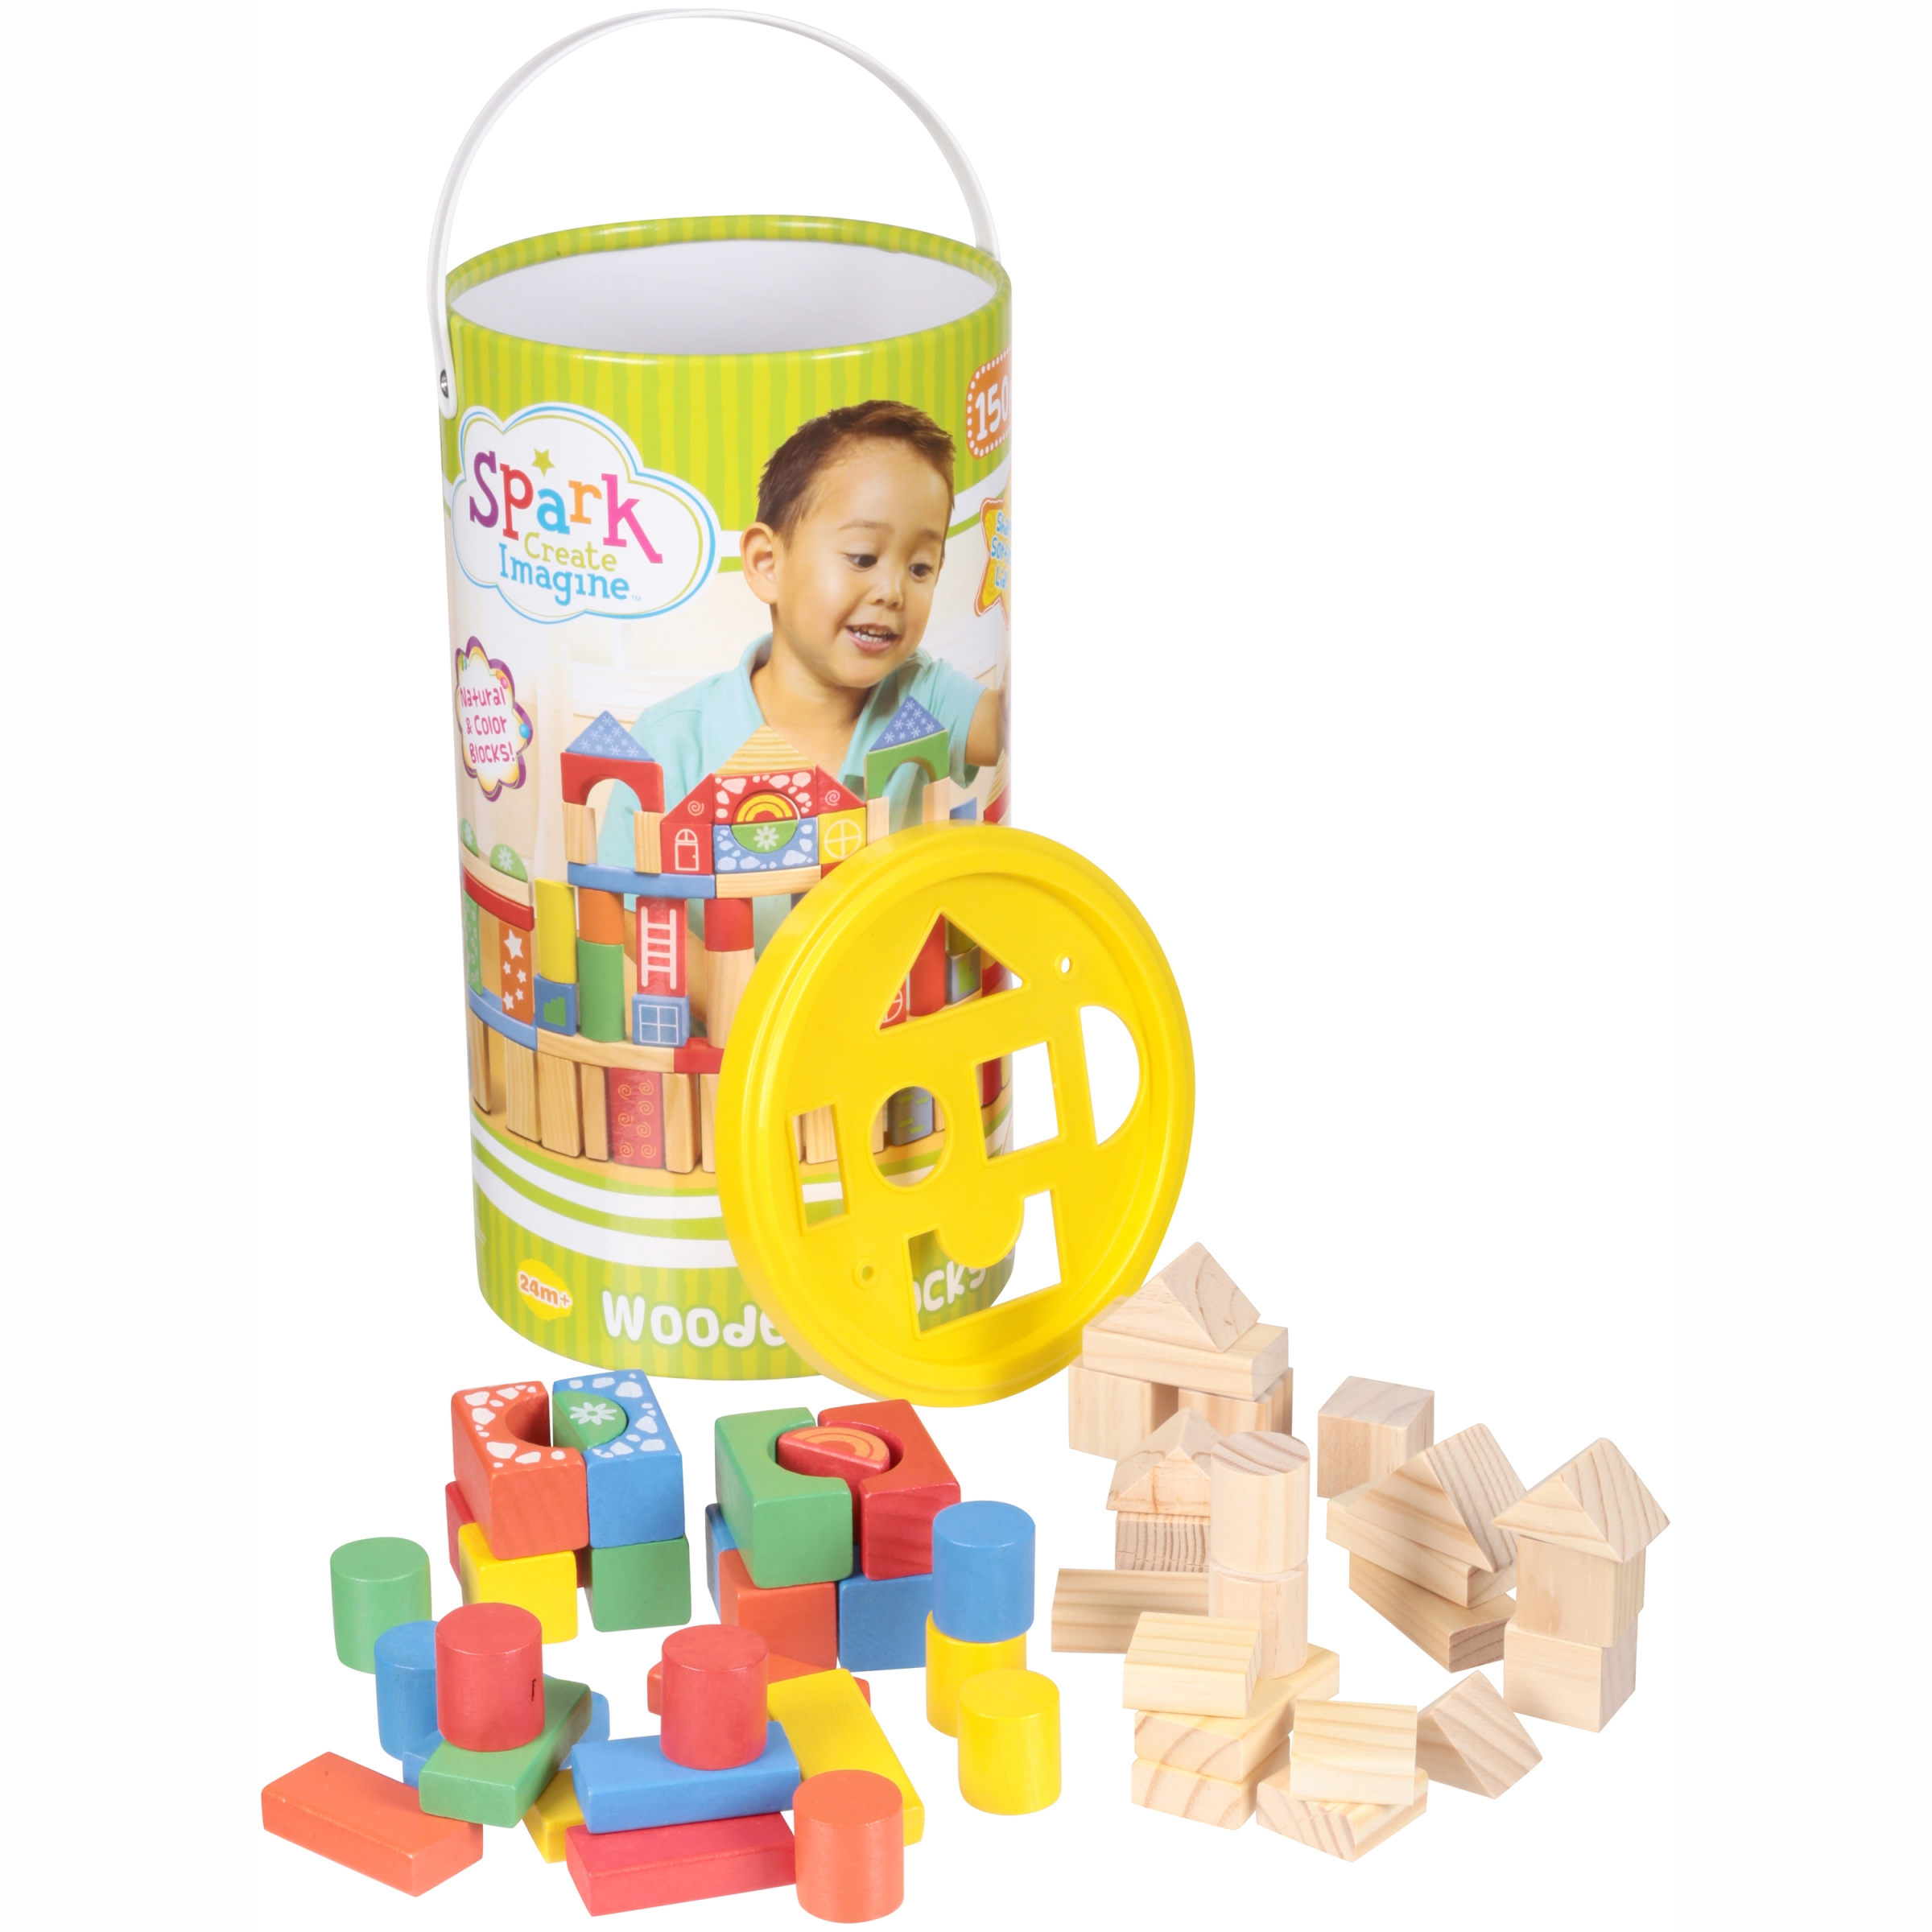 Spark Create Imagine™ Wooden Blocks 150 pc. Canister